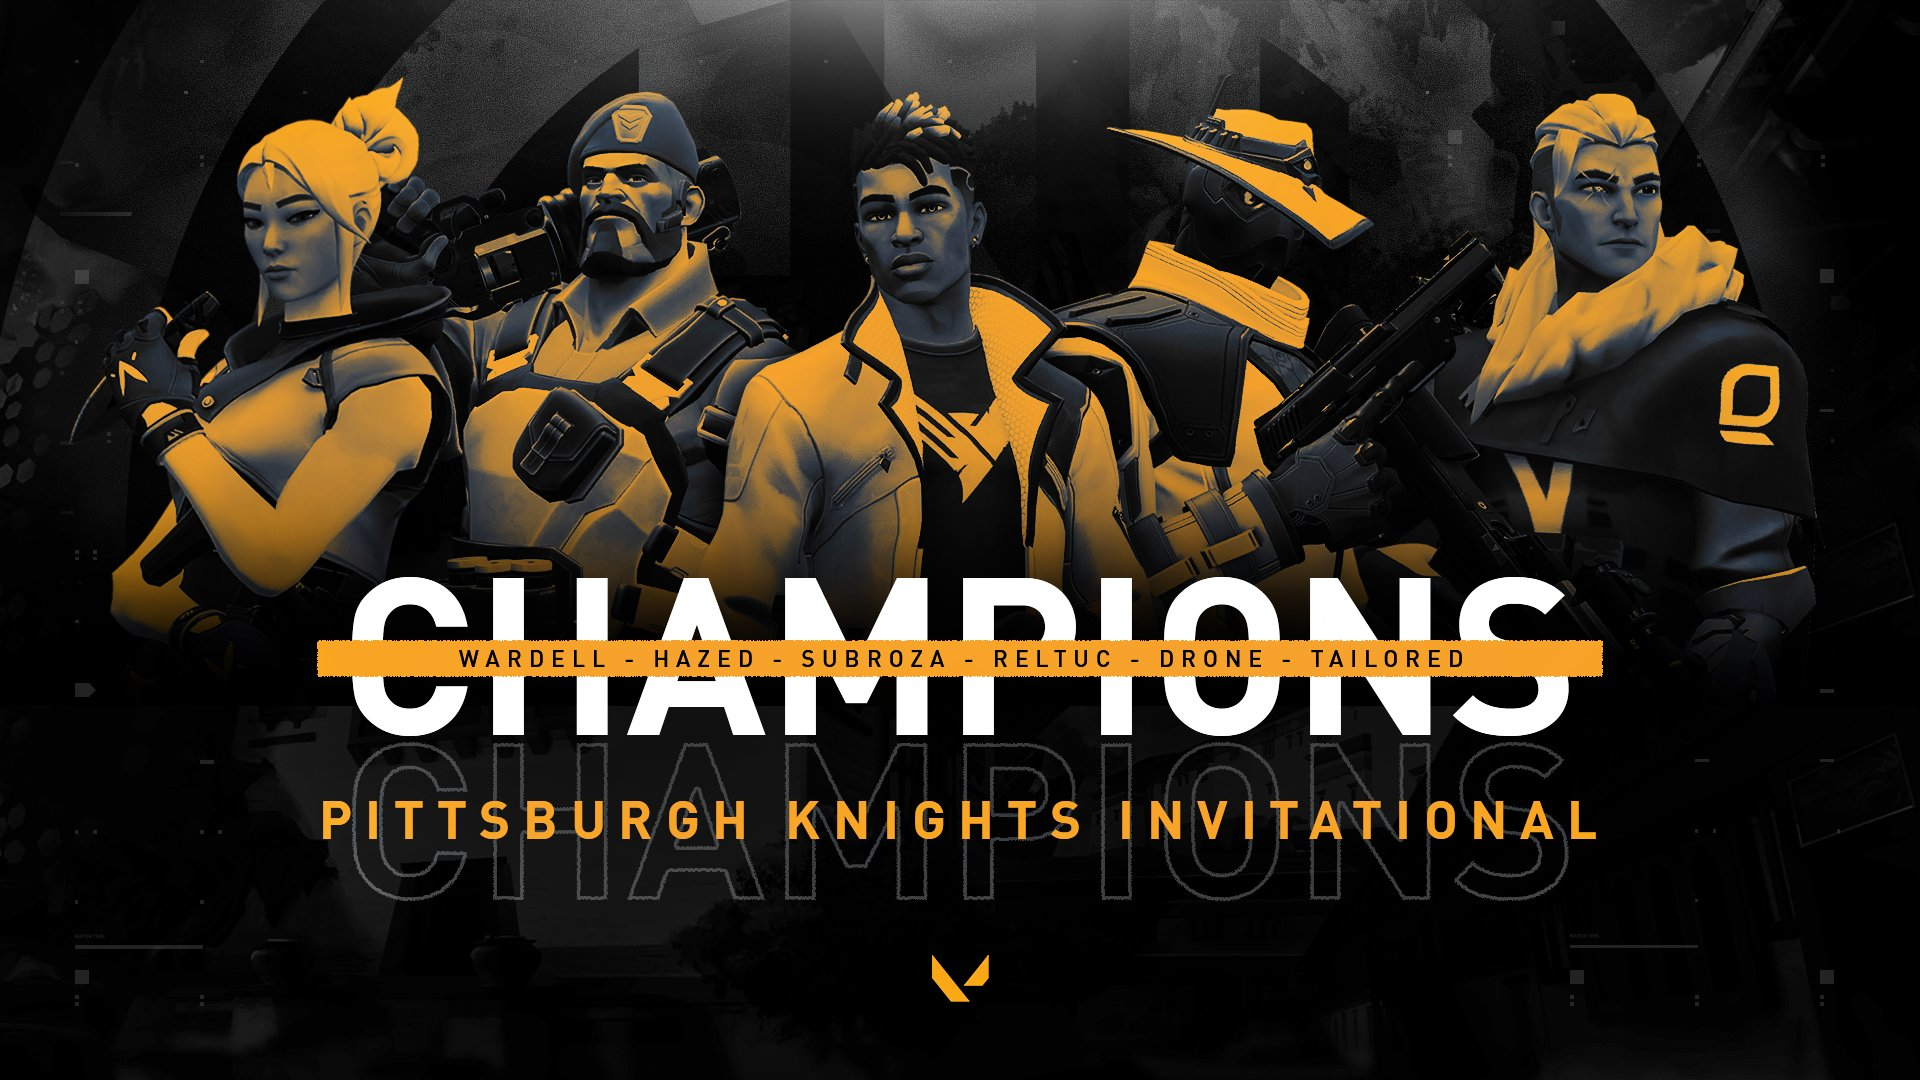 pittsburgh knights invitational tsm